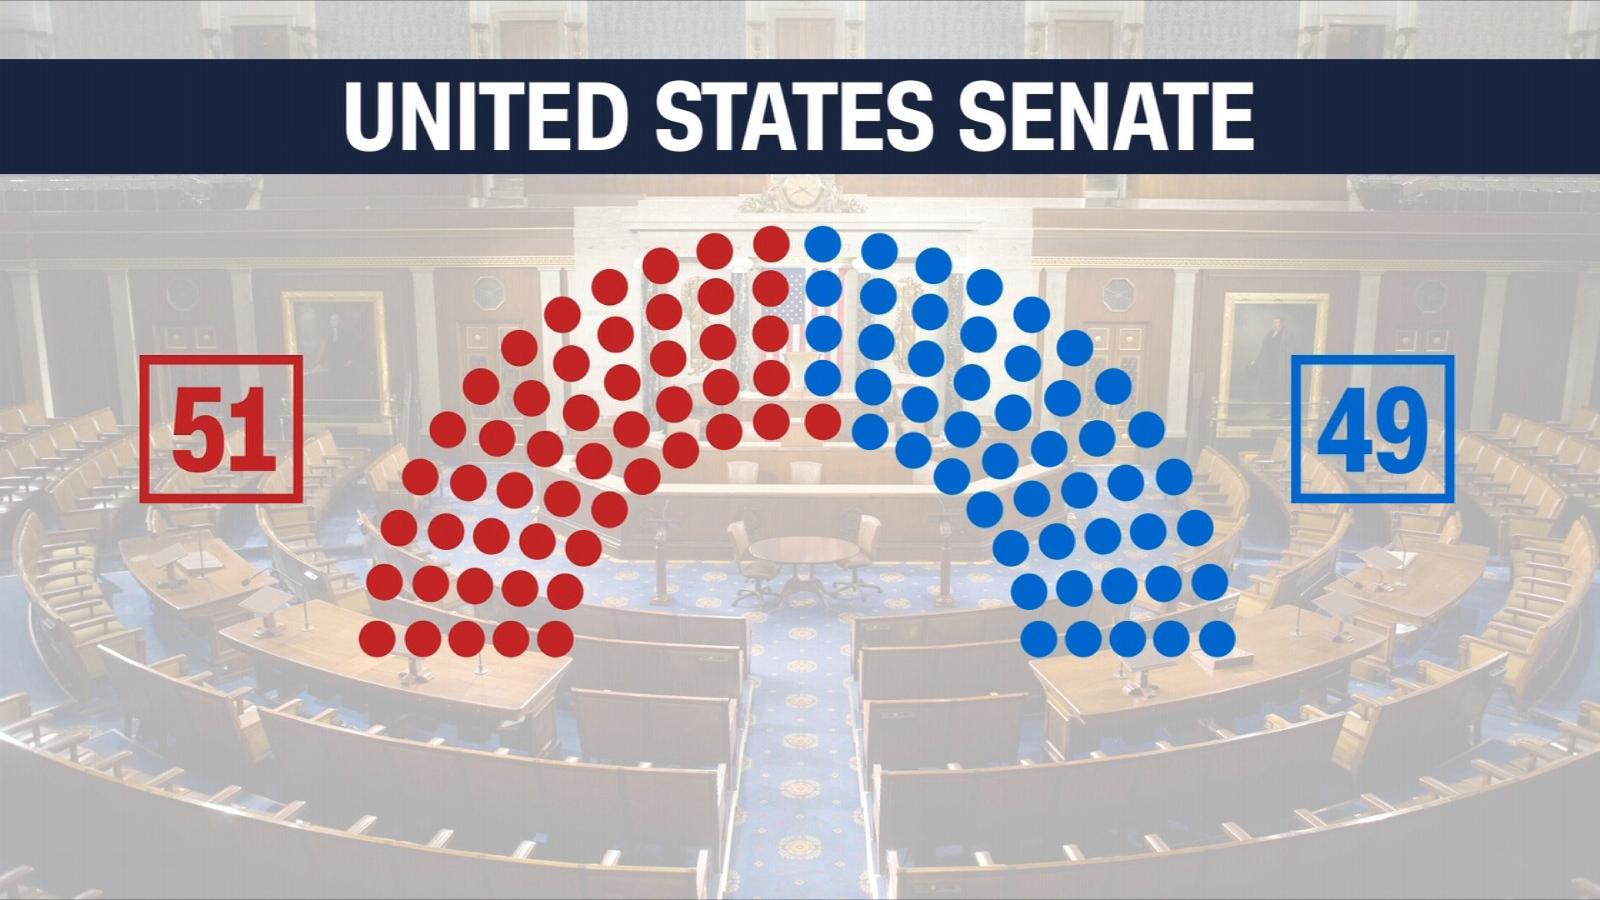 Us Senate Makeup By Party 2017 - Makeup Wordplaysalon